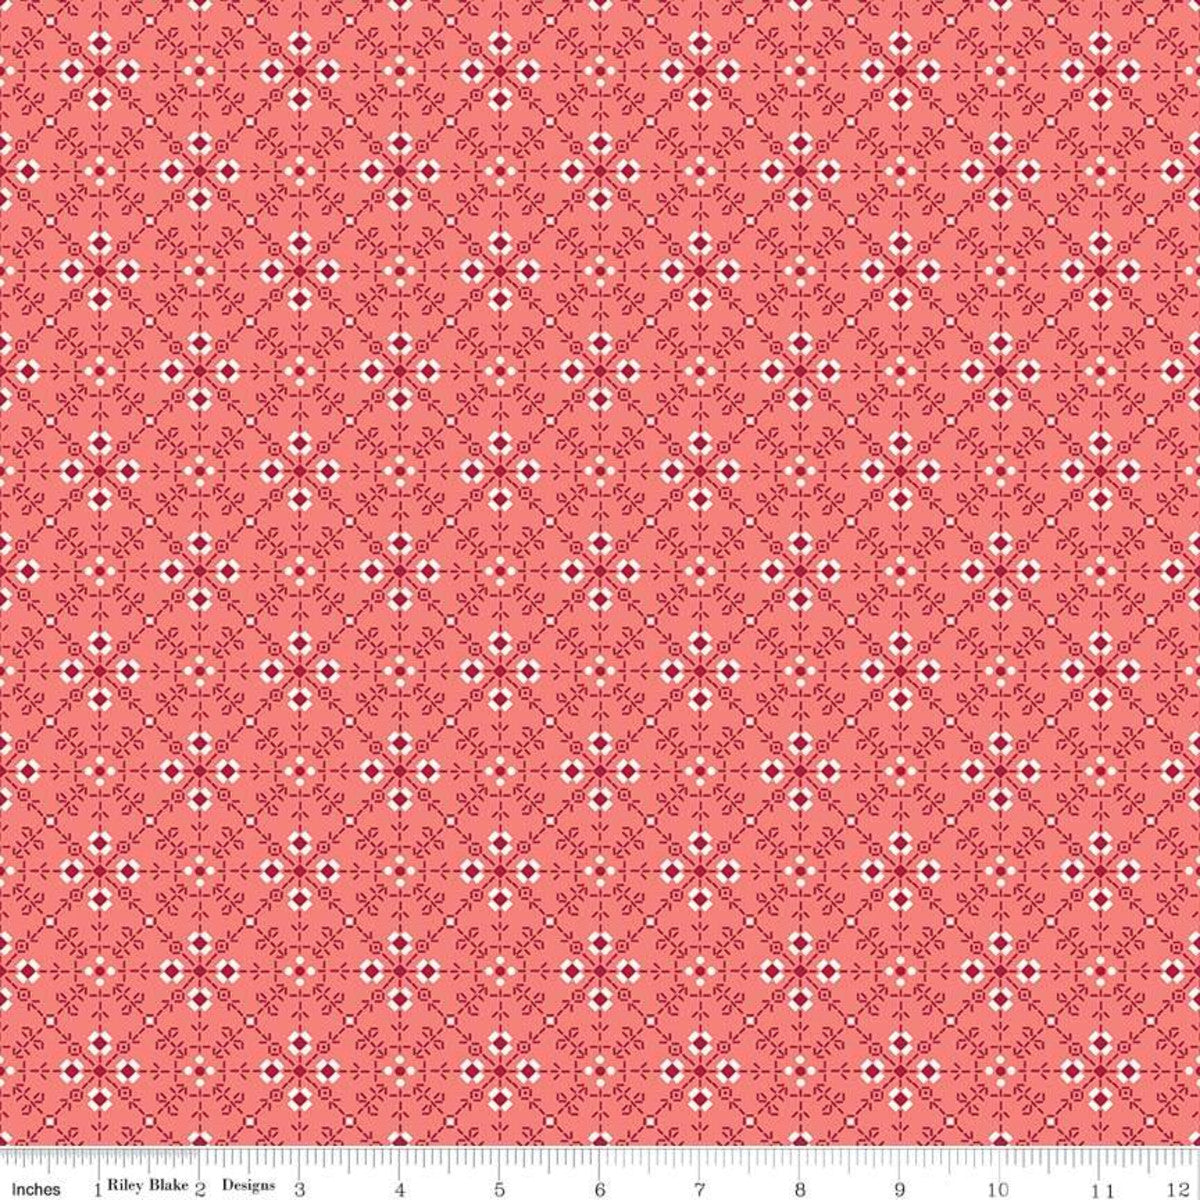 Granny Chic - Stitches Pink